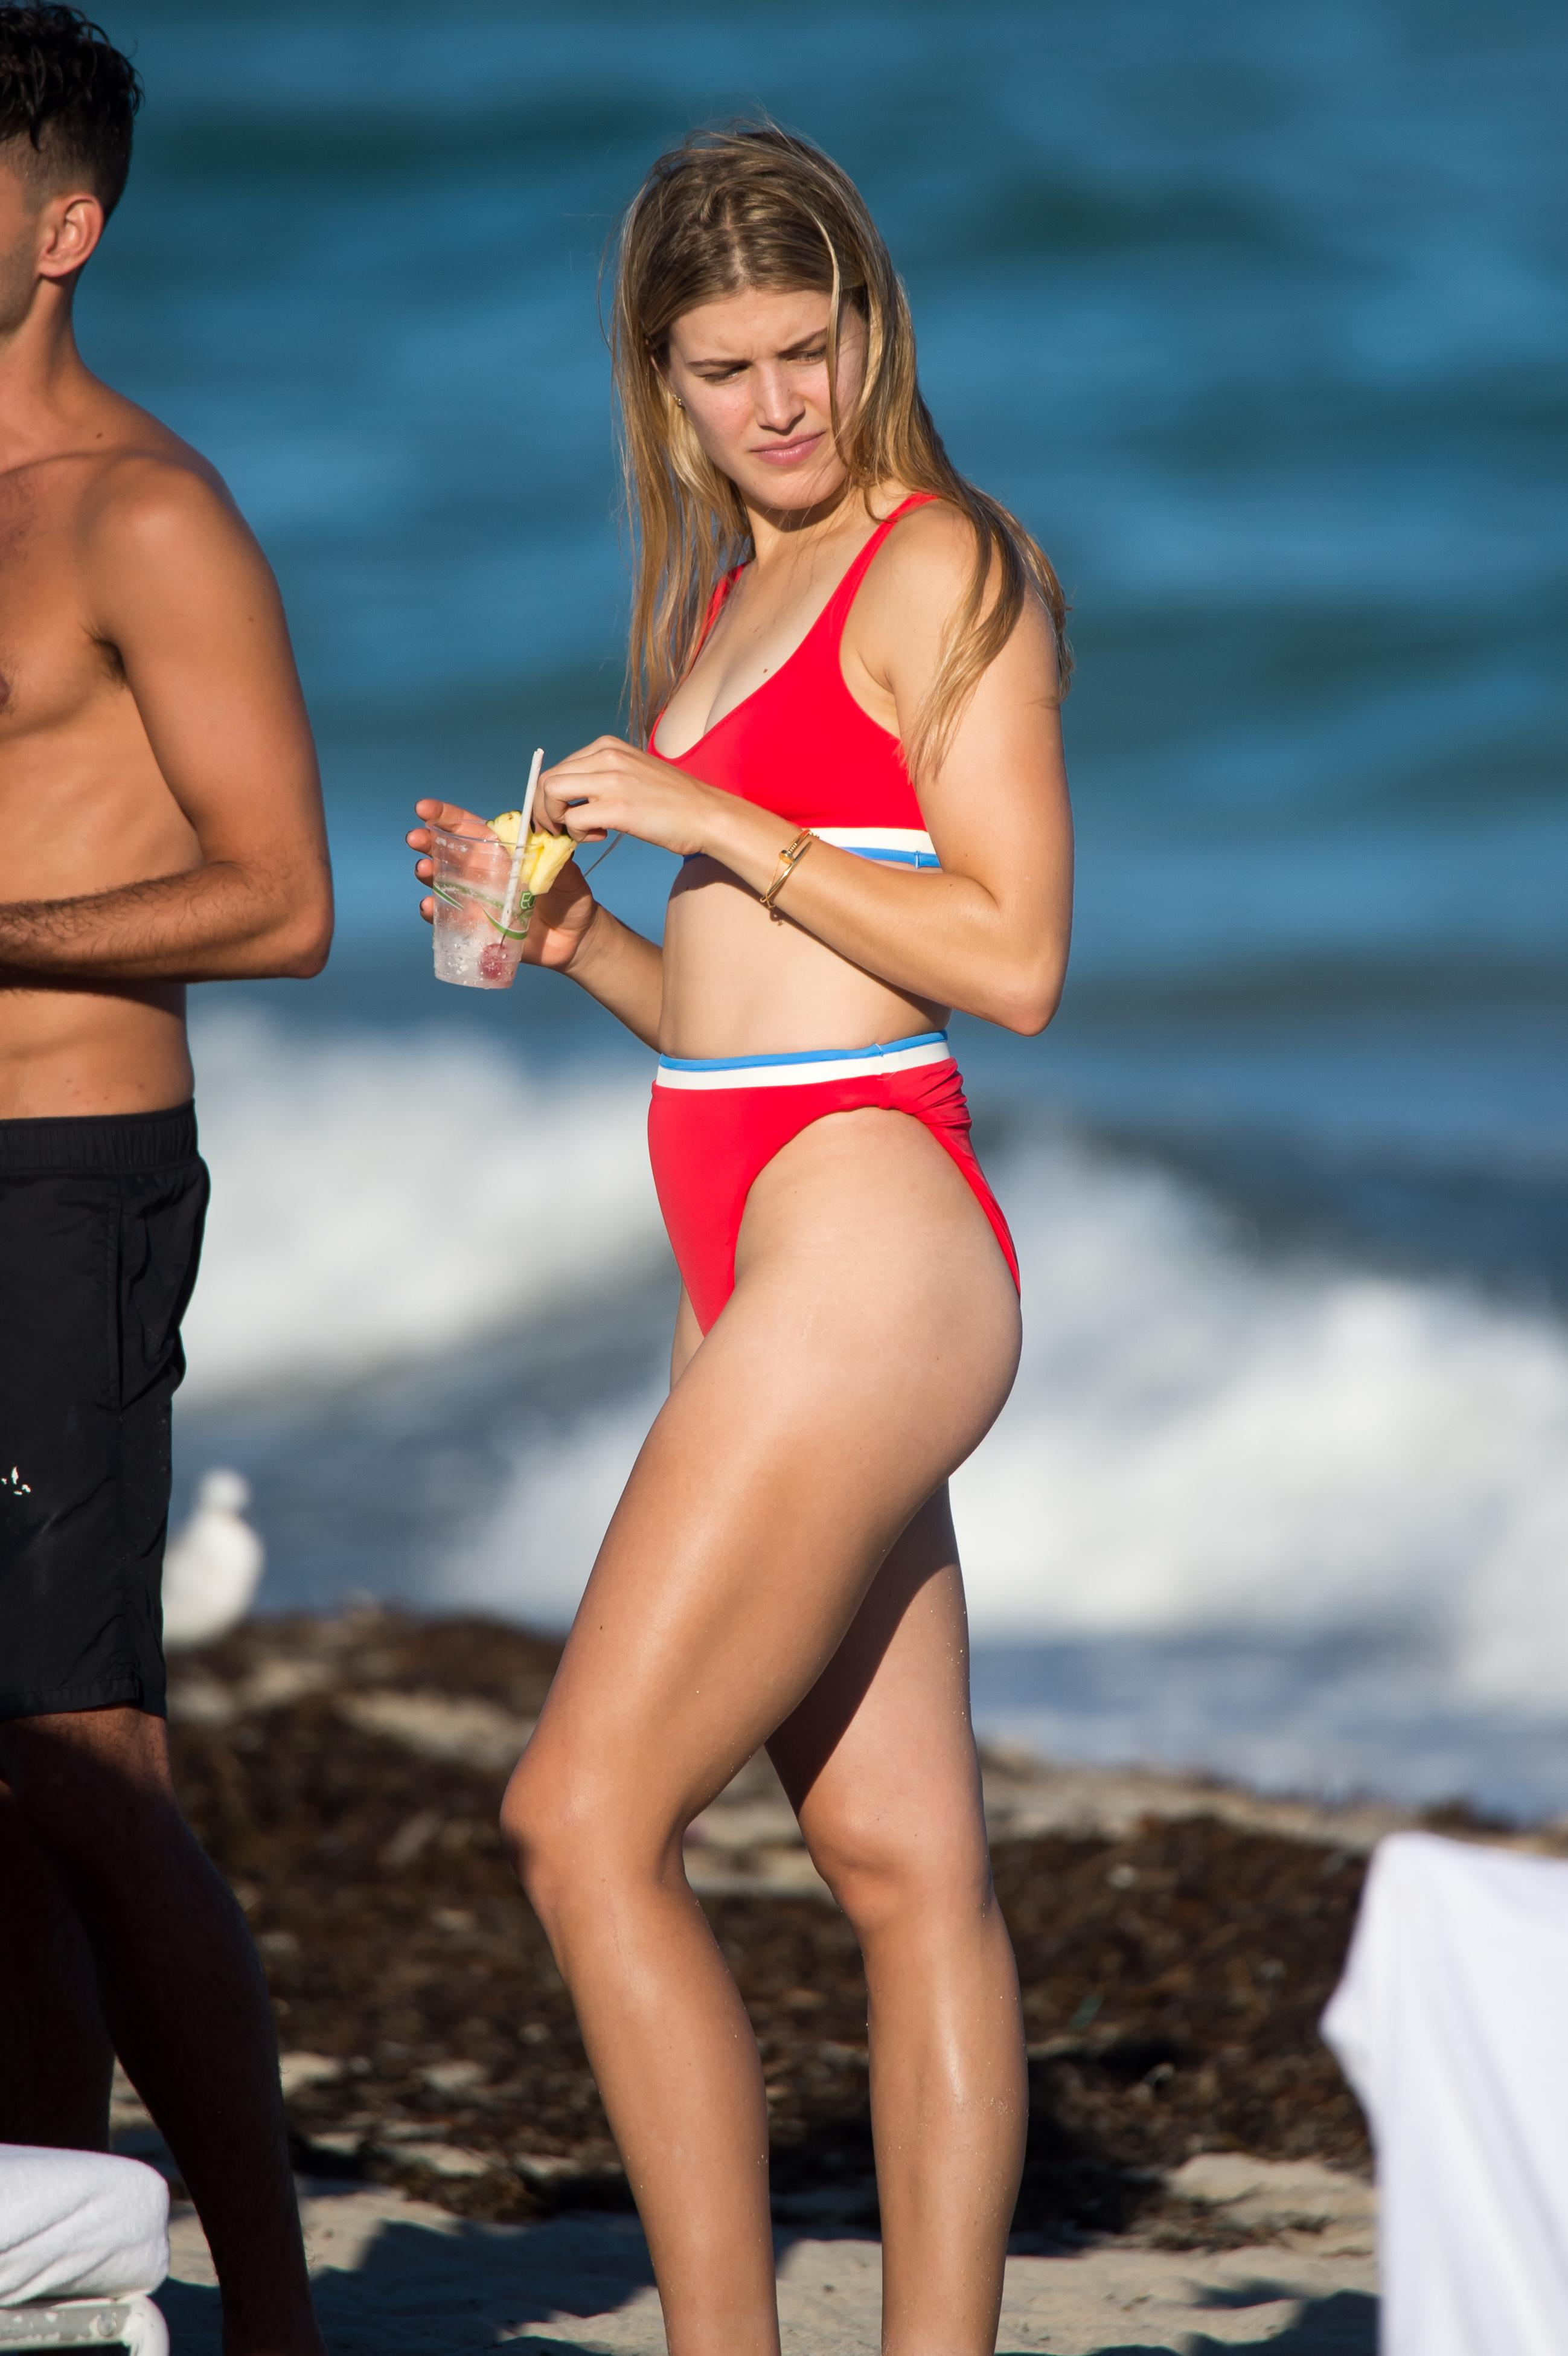 The Canadian-born star enjoyed a stay in Miami before she travelled to Necker Island